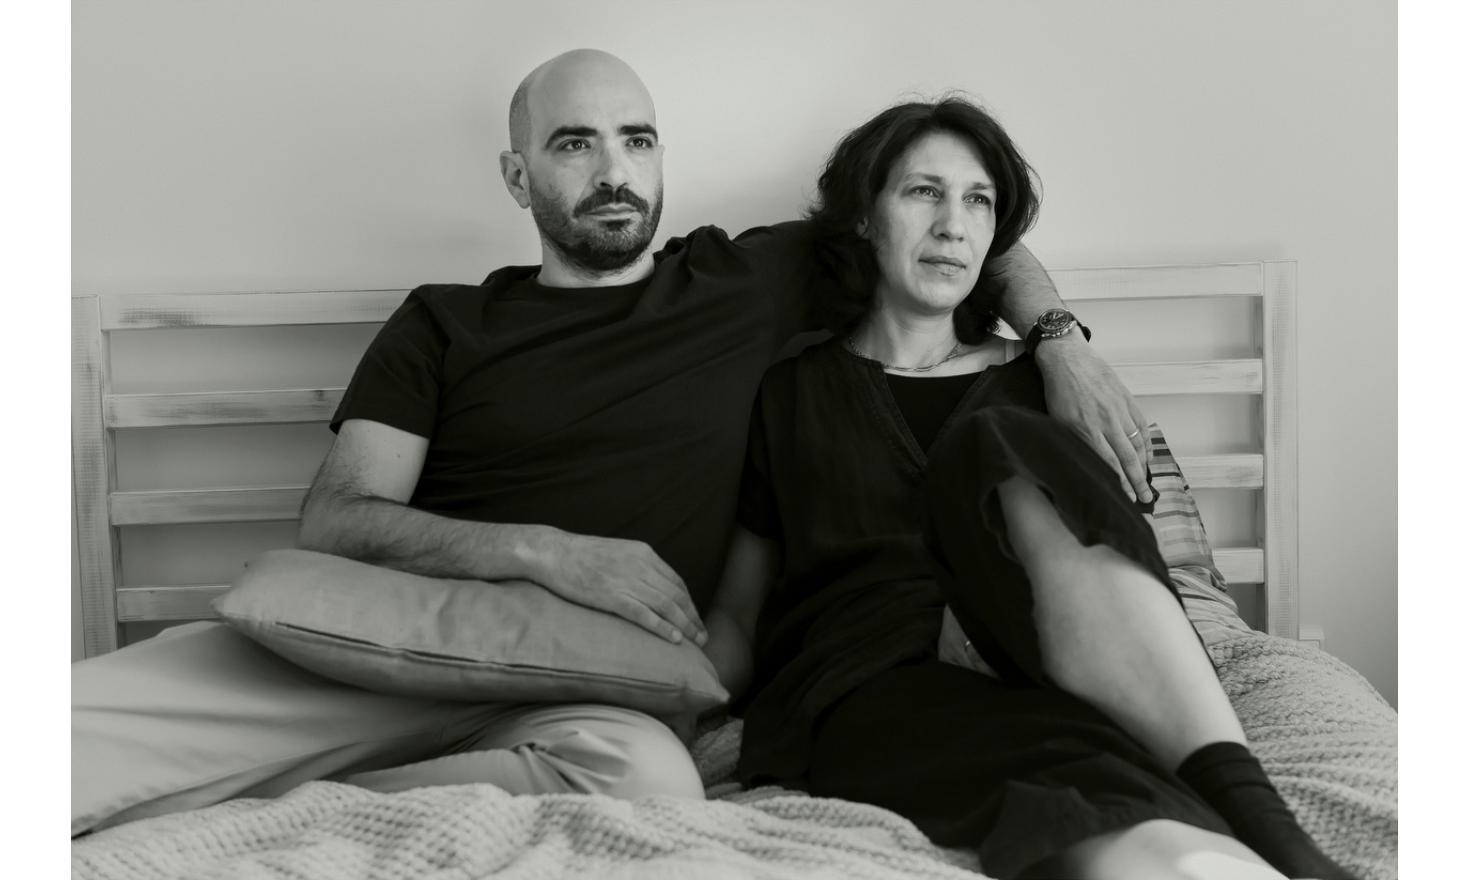 Geneviève and Julien, Lisbon. April 2015